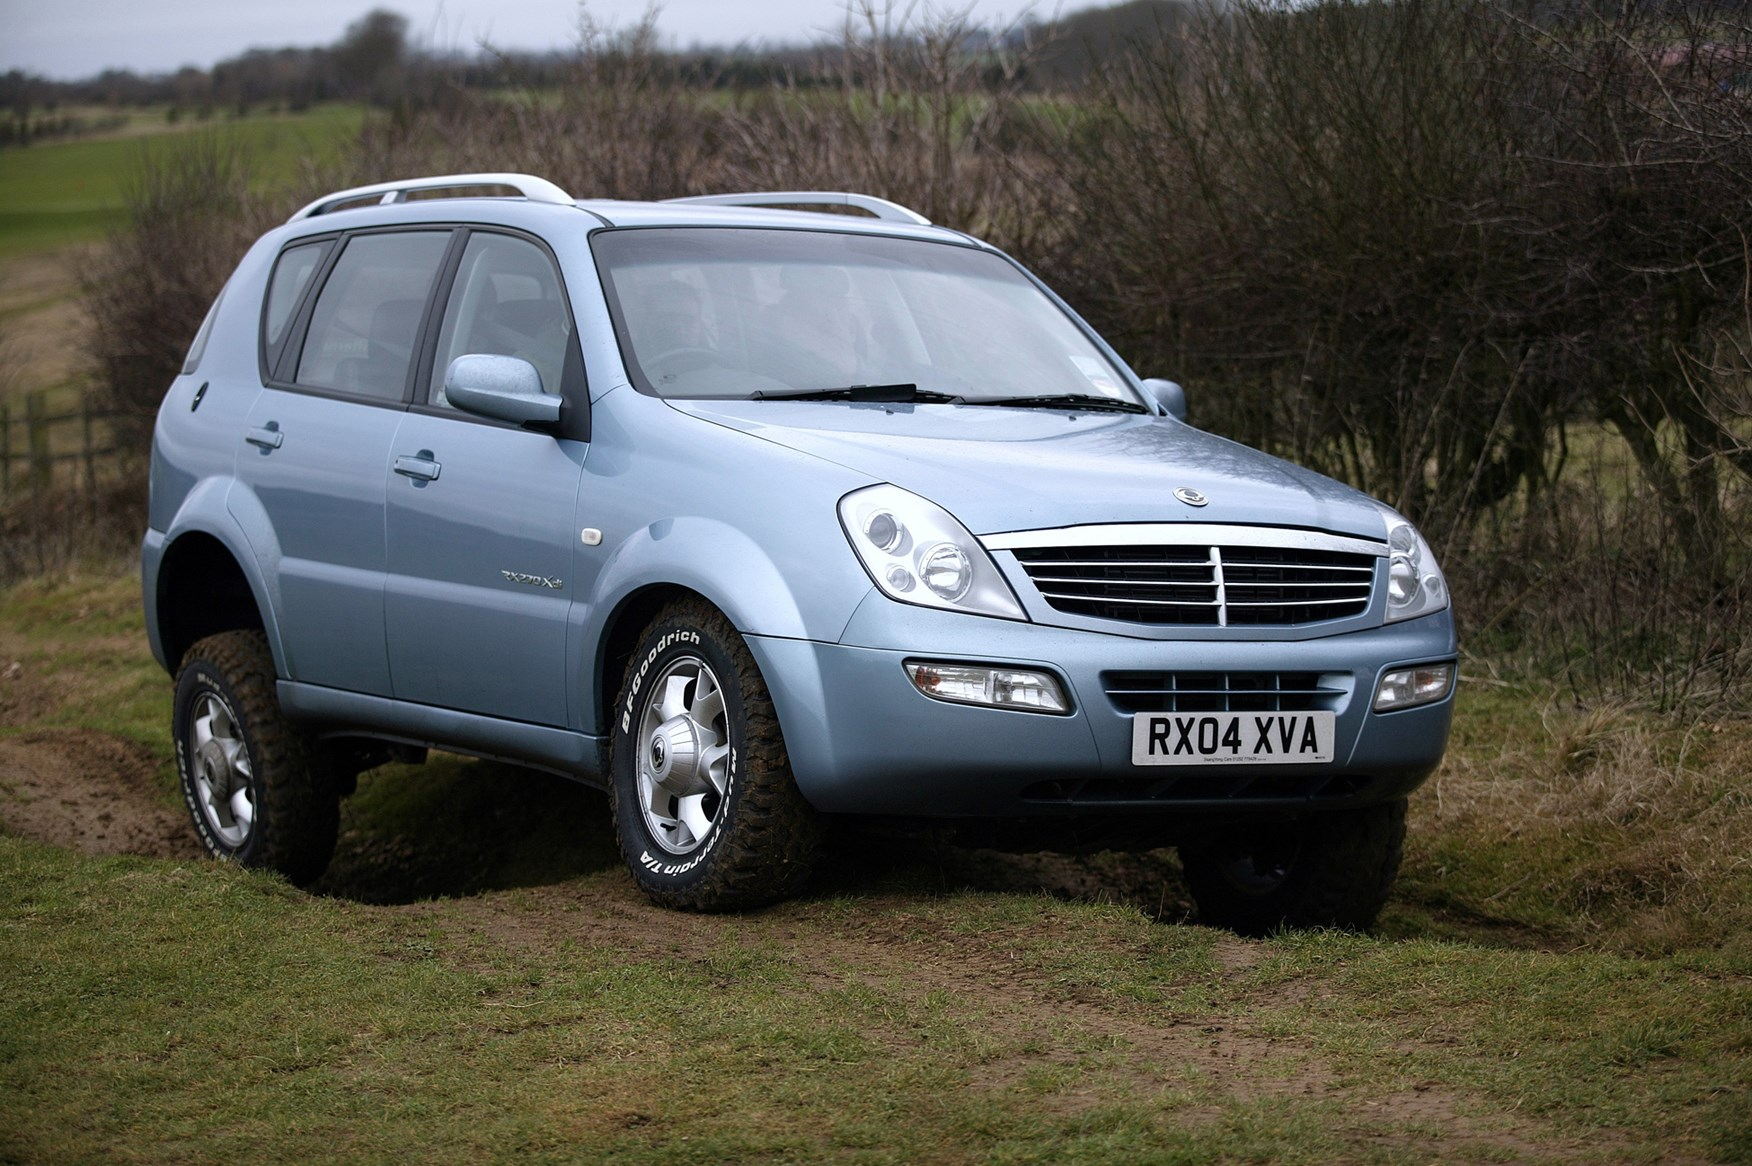 ssangyong rexton estate review 2003 2013 parkers. Black Bedroom Furniture Sets. Home Design Ideas